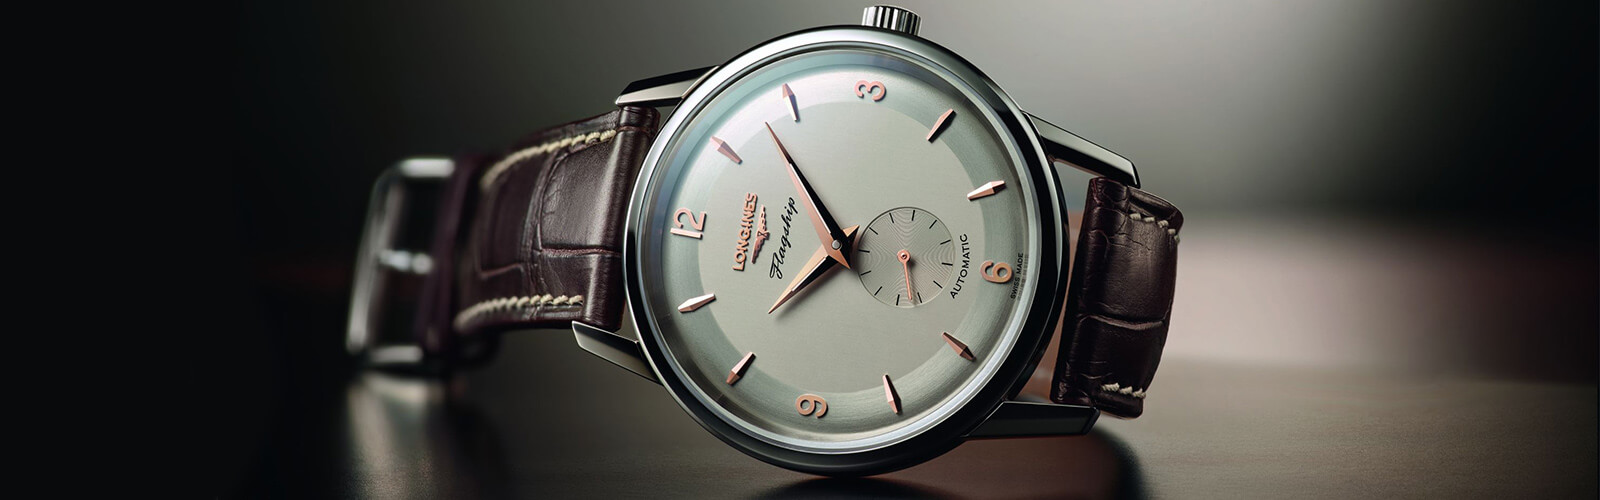 LONGINES Flaghsip Heritage 60th Anniversary